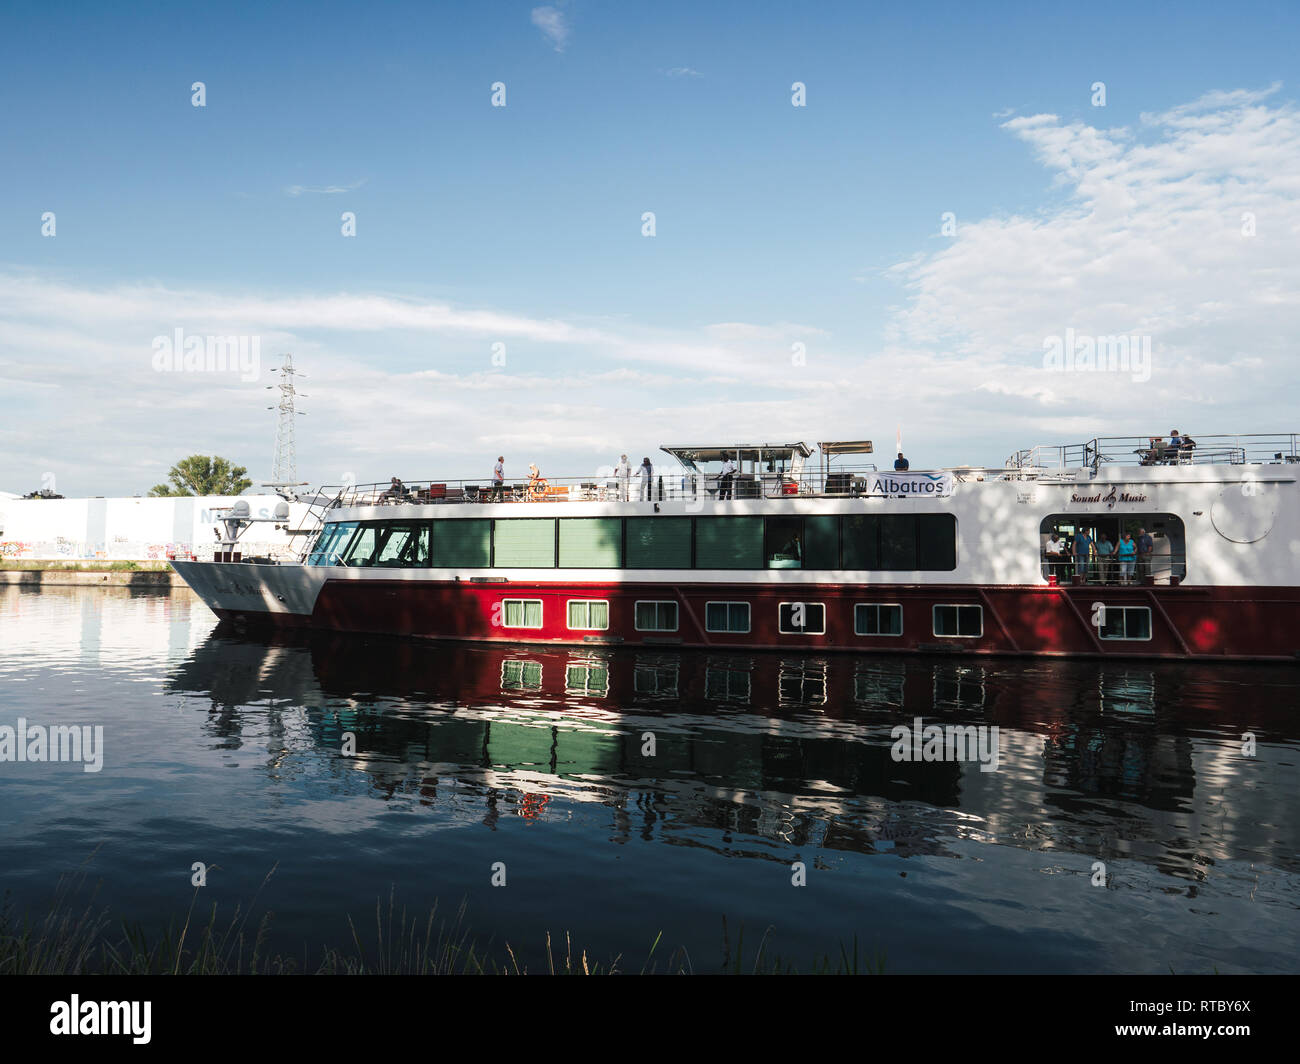 STRASBOURG, FRANCE - JUNE 27, 2017: River cruising boat in Strasbourg on warm summer day - MS Sound of Music is a deluxe river cruise vessel chartered exclusively by Gate 1 Travel  - Stock Image